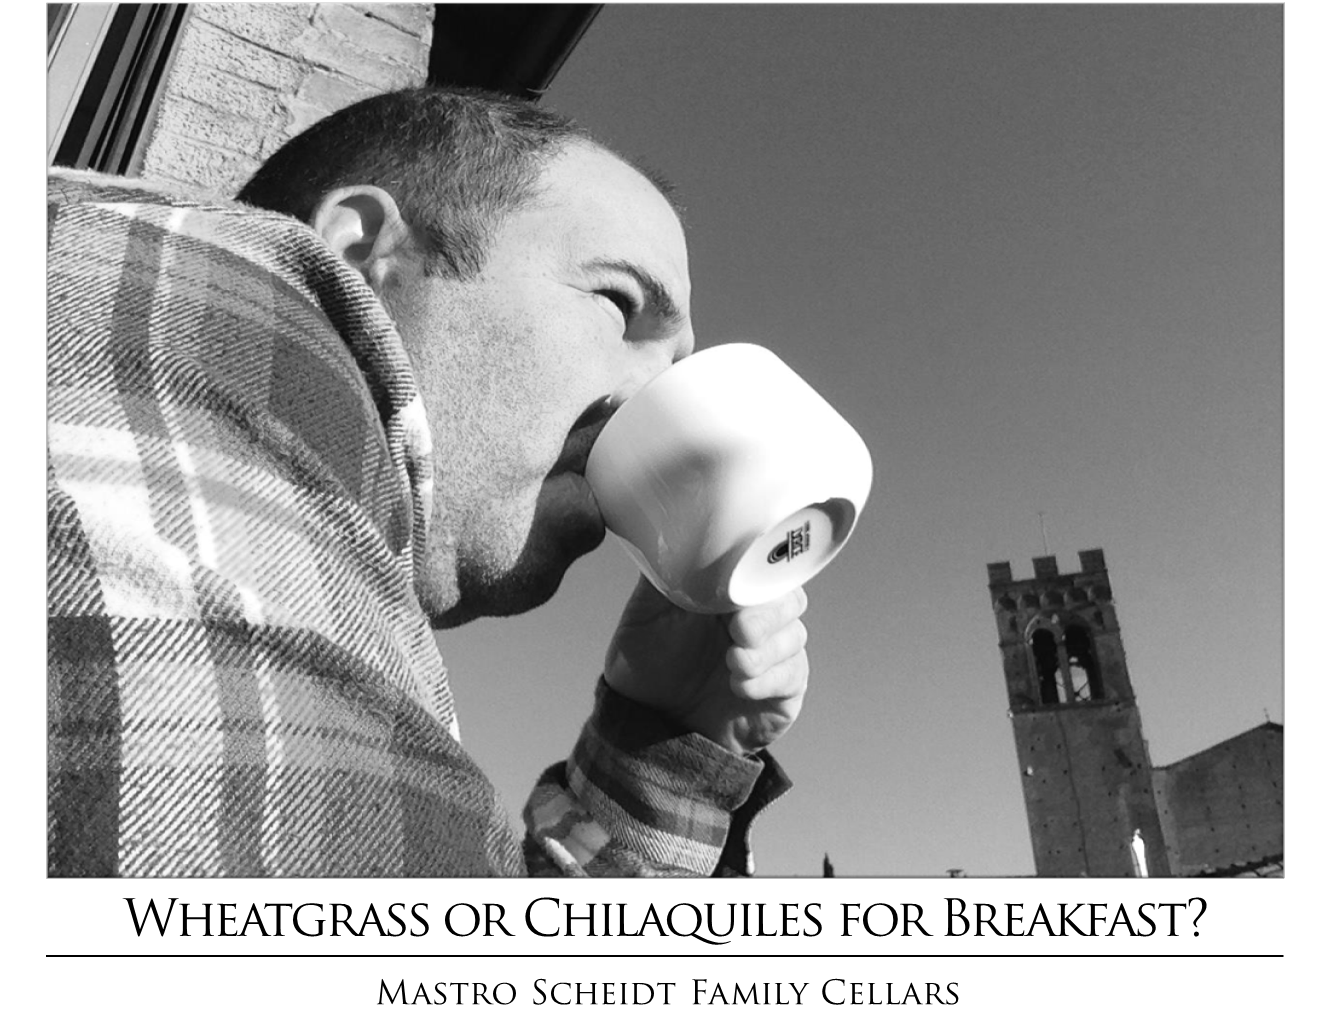 Wheatgrass or Chilaquiles?